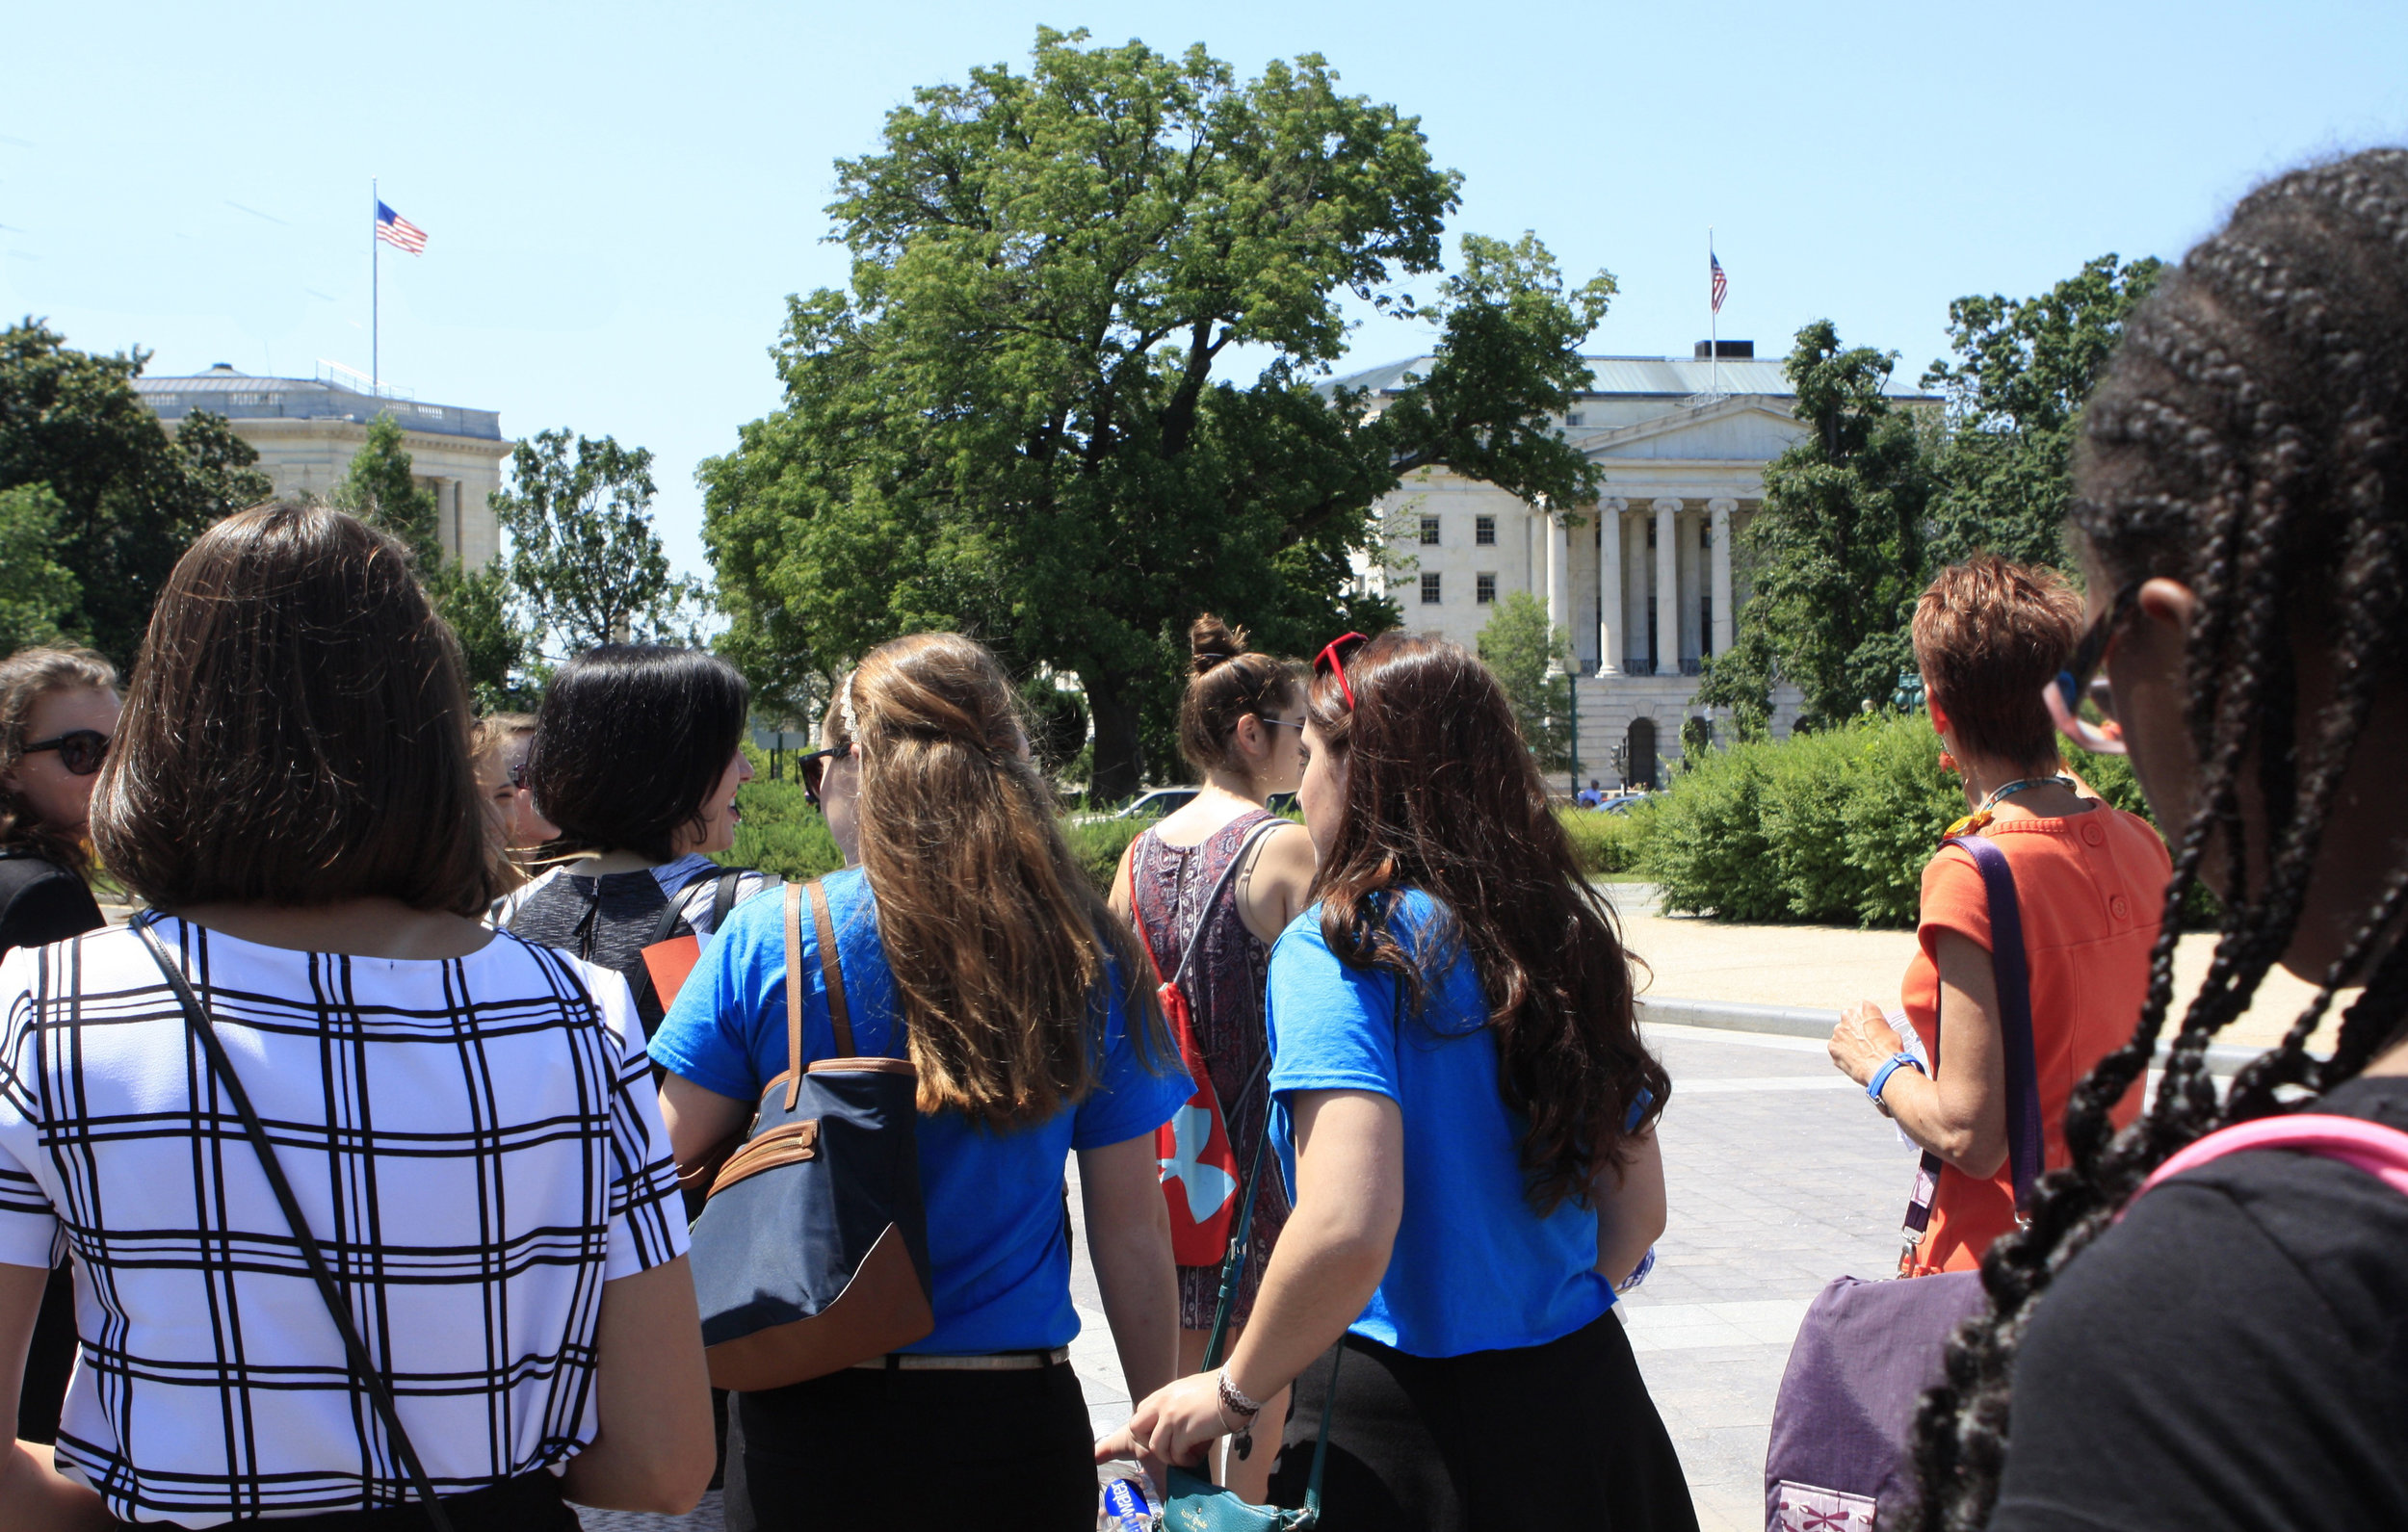 """United States - School Girls Unite, which includes middle and high school girls in the Washington D.C. area, lobbies members of the US Congress to support universal education for girls. (Julia, 12, says, """"Education opens your world to anything."""") The group, working with Girls for a Change, inspired President Barack Obama to sign a proclamation making October 11 the National Day of the Girl. (The United Nations designated October 11 as the International Day of the Girl Child). Jessica, 16, admits, """"Best was feeling like our voices mattered; like people were actually listening to us."""""""